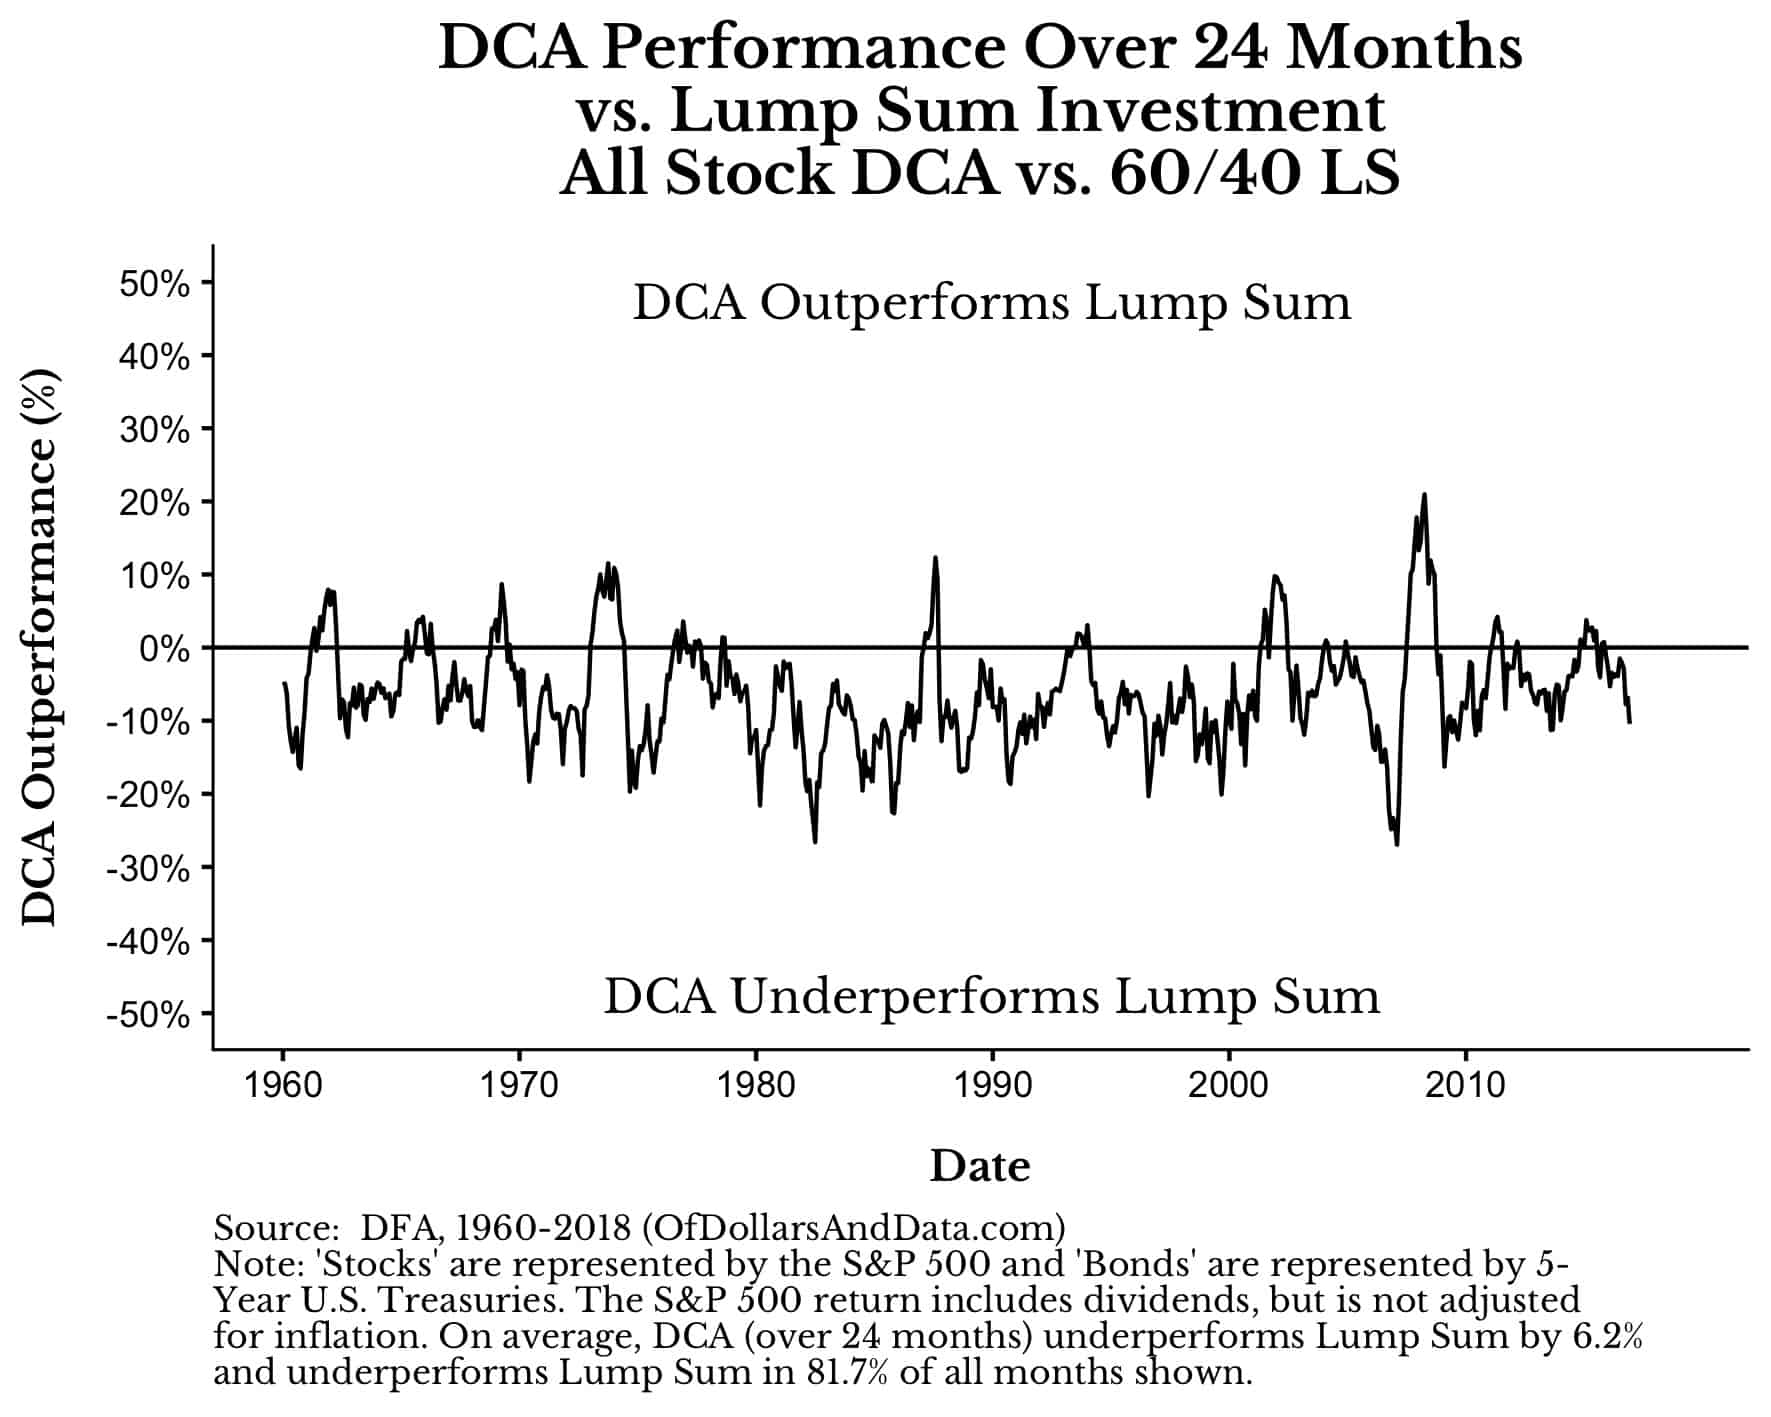 dollar-cost averaging relative performance versus lump sum into 60/40 stock/bond portfolio over time